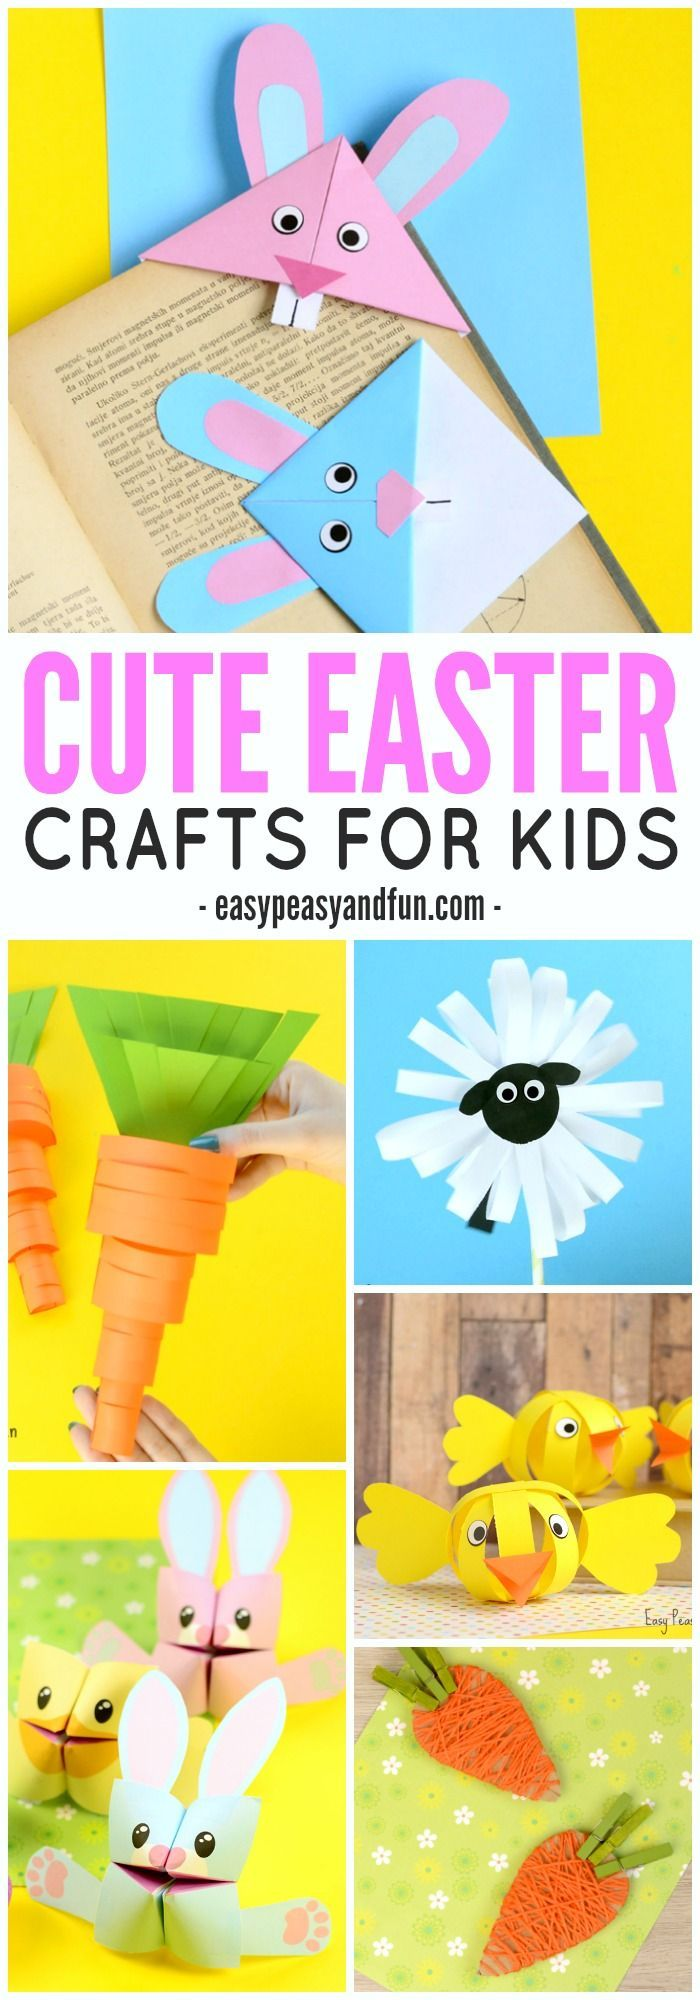 Easter craft ideas for toddlers - Cute Easter Crafts For Kids To Make